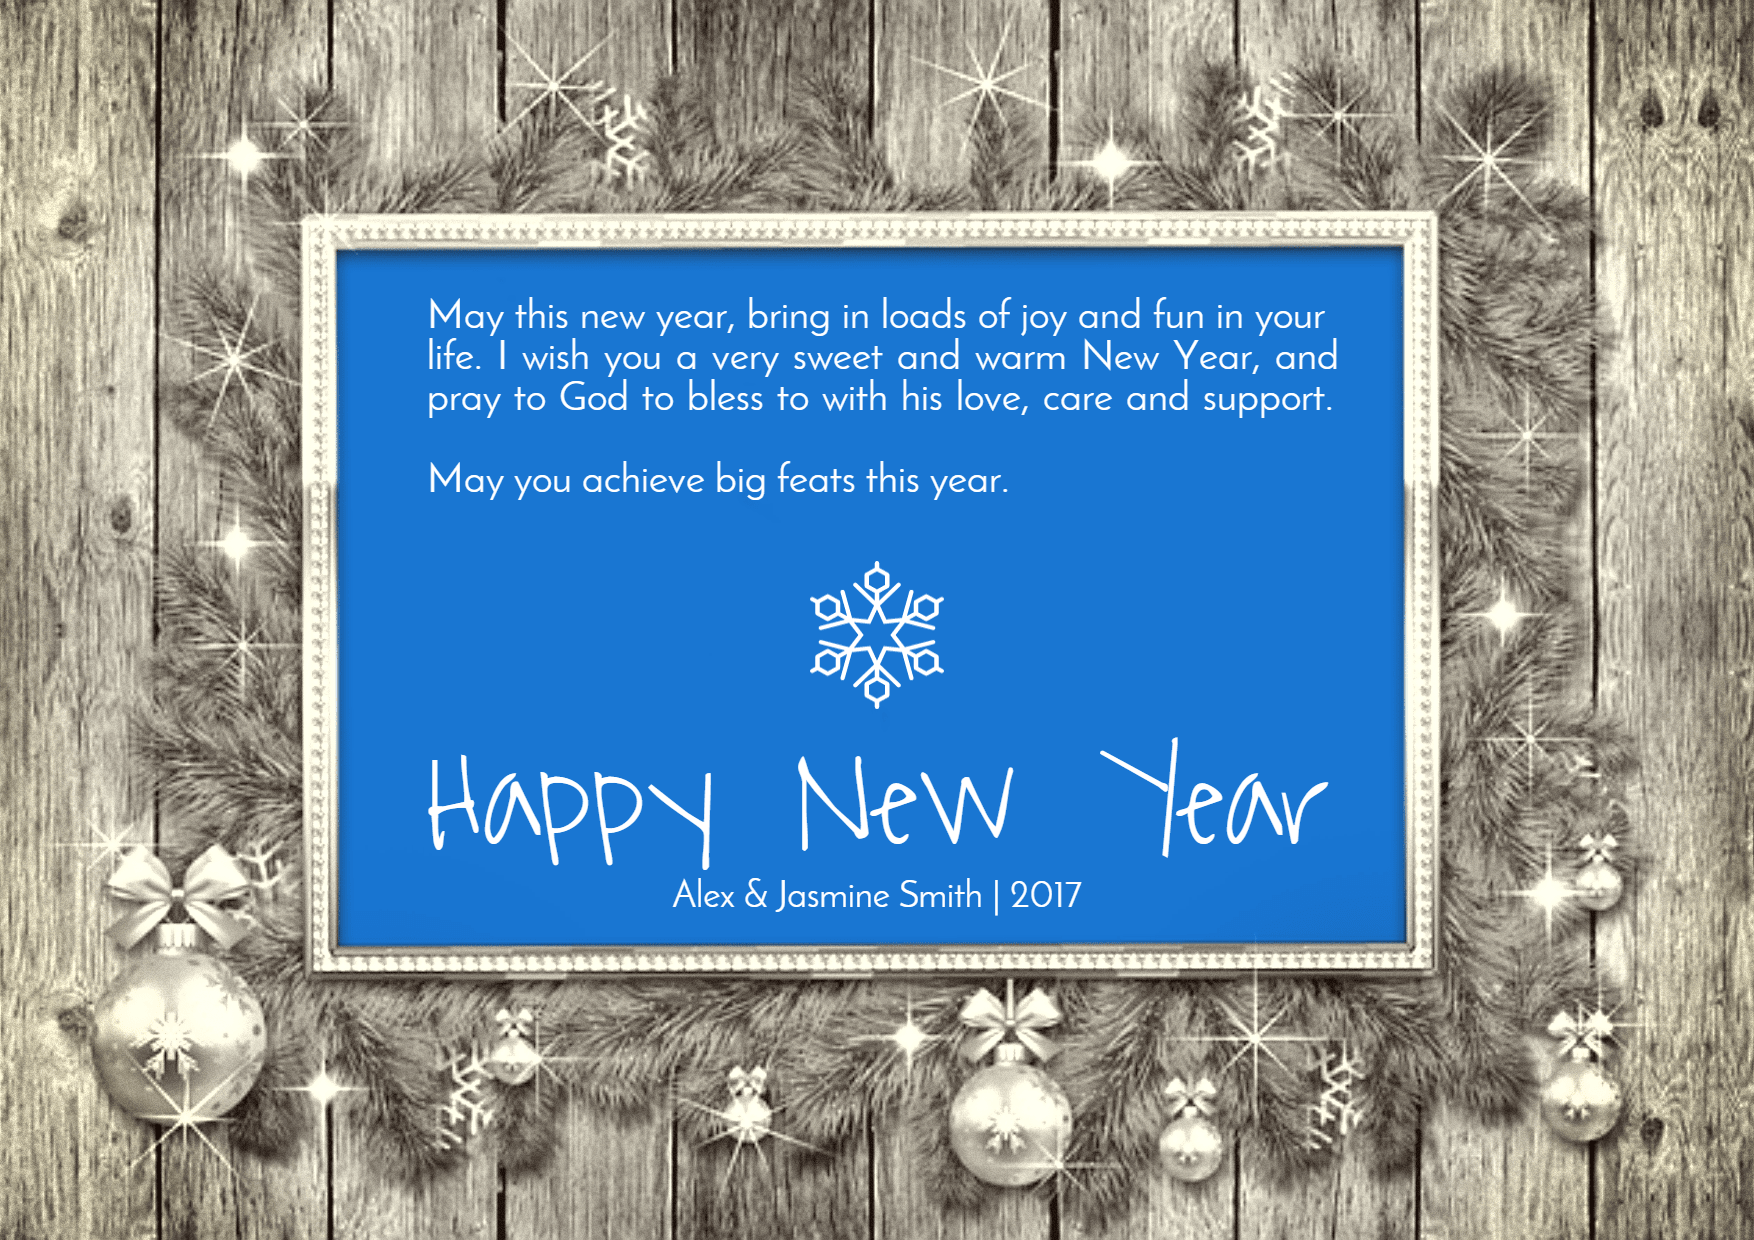 Mockup,                Quote,                Poster,                Happynewyear,                Anniversary,                White,                Black,                Blue,                 Free Image